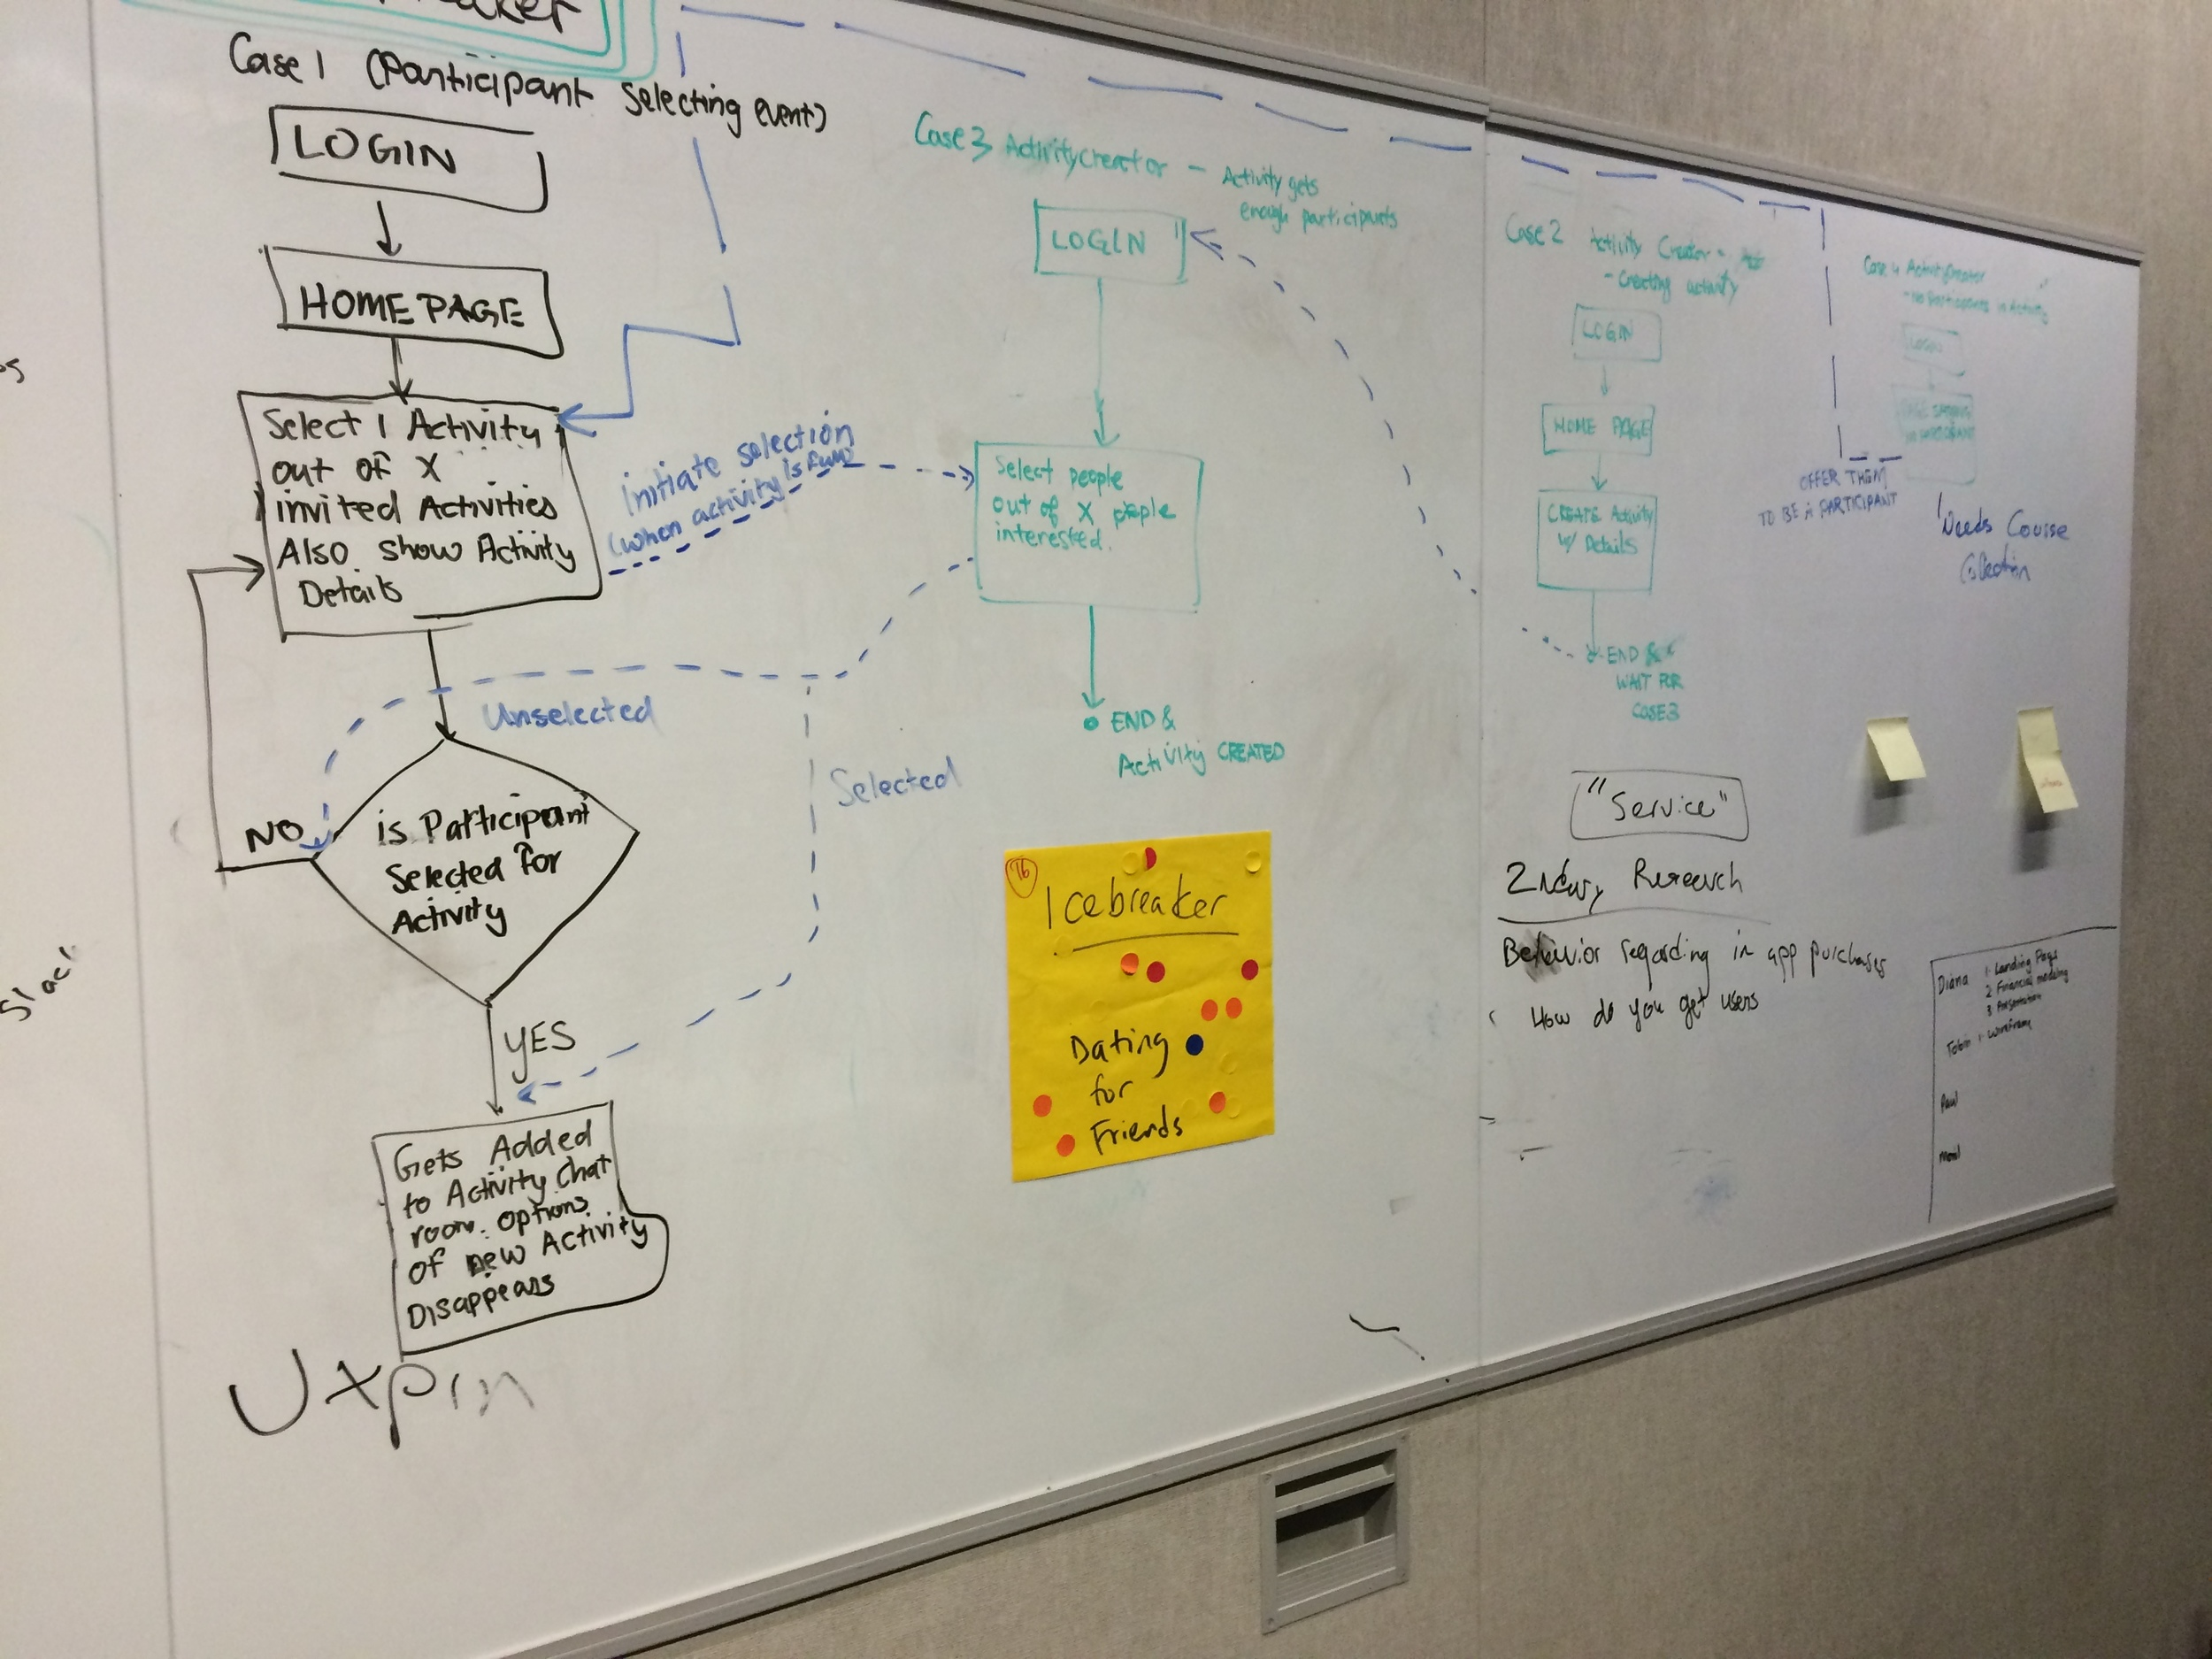 Original interaction flow and use cases